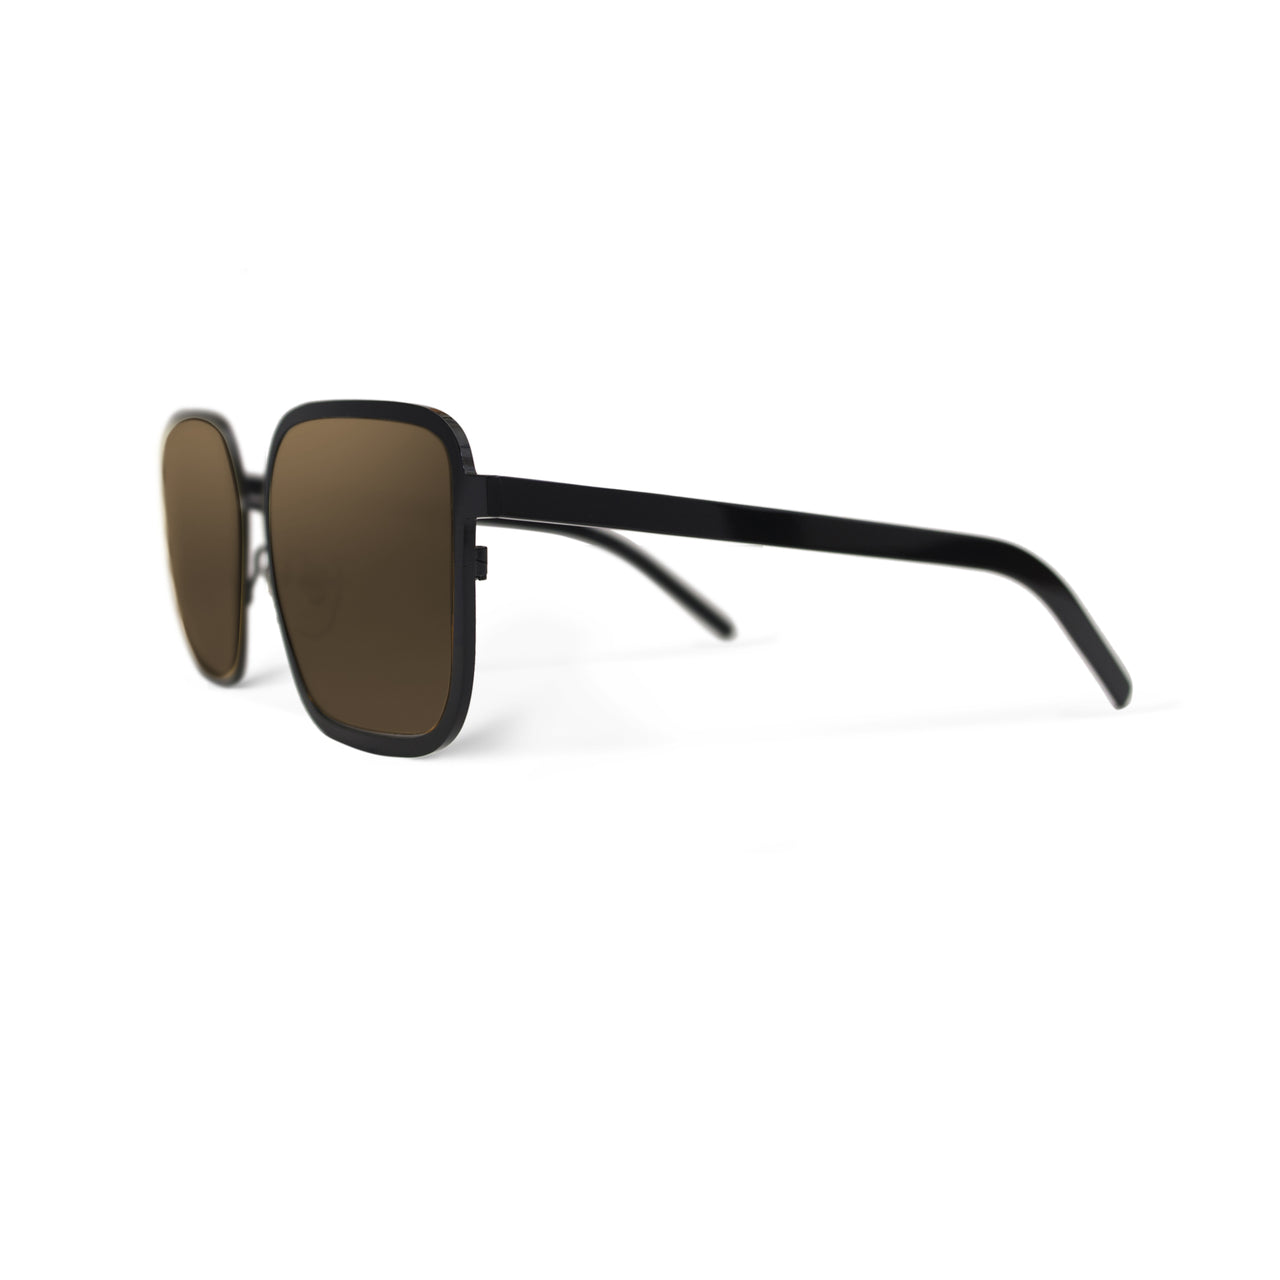 Metal. Gloss Black. Bronze Mirror Lens. - BLYSZAK eyewear eyewear - eyewear, optical, sunglasses